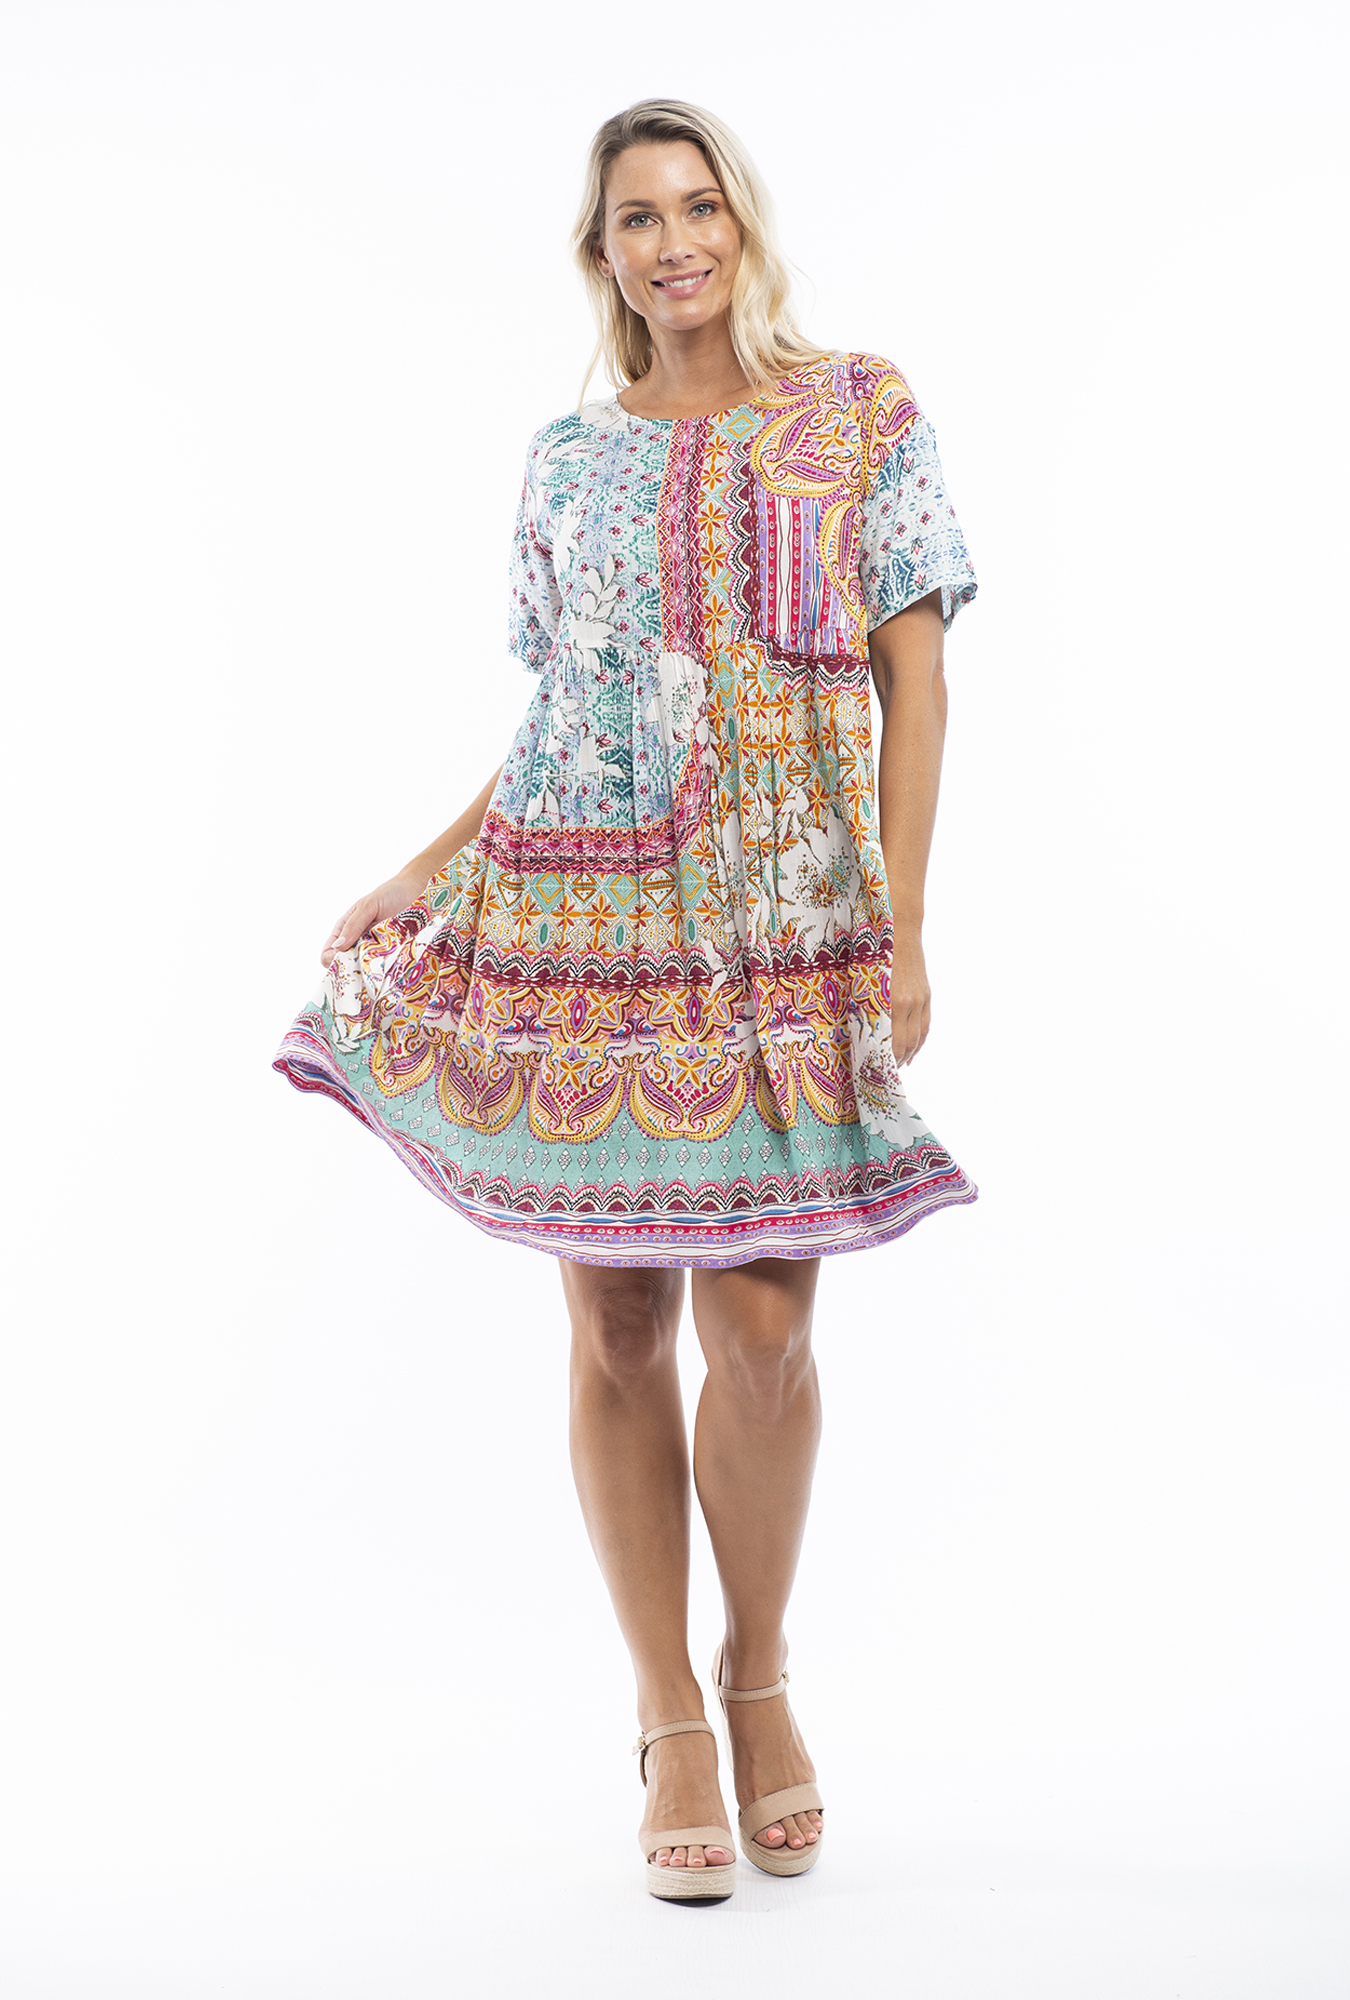 Posie Dress in Chateau Usse